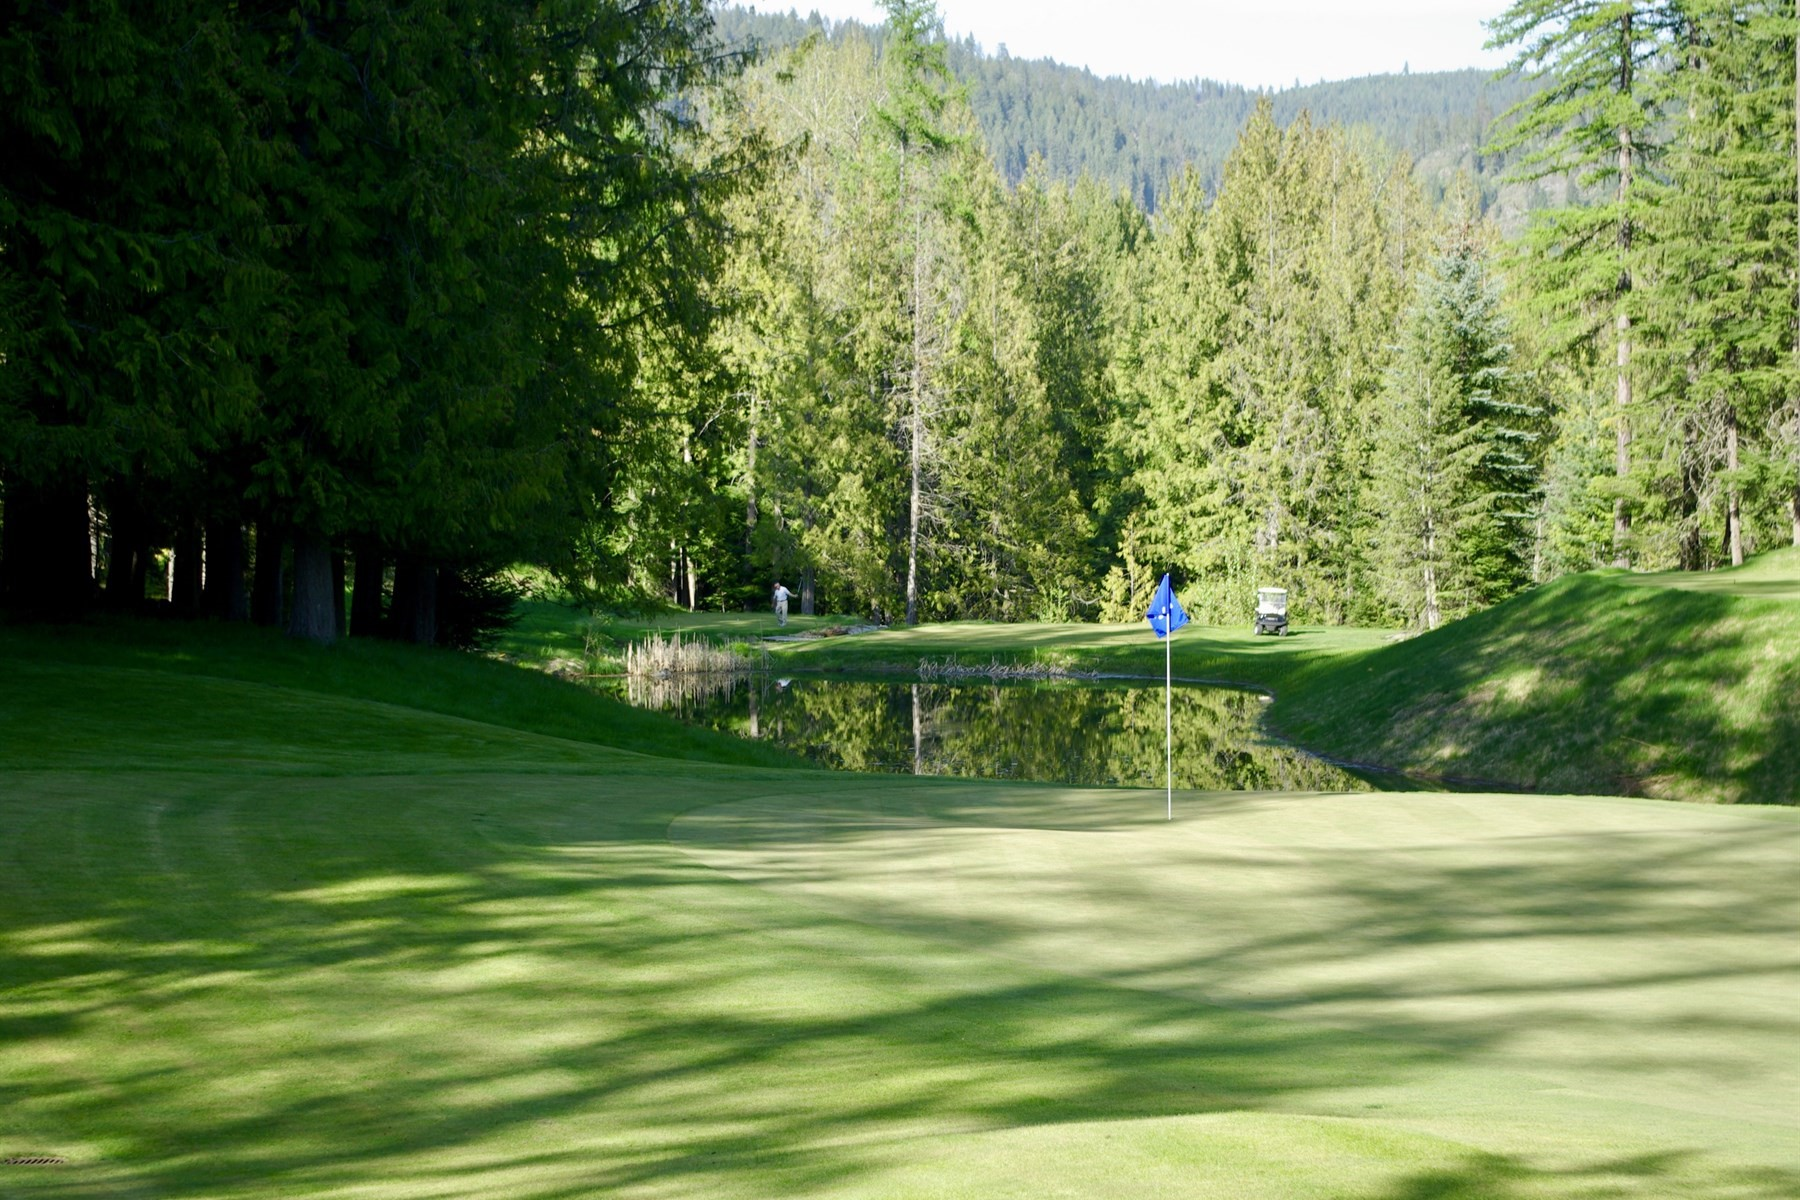 Land for Sale at The Idaho Club A-15 S Idaho Club Drive Sandpoint, Idaho 83864 United States